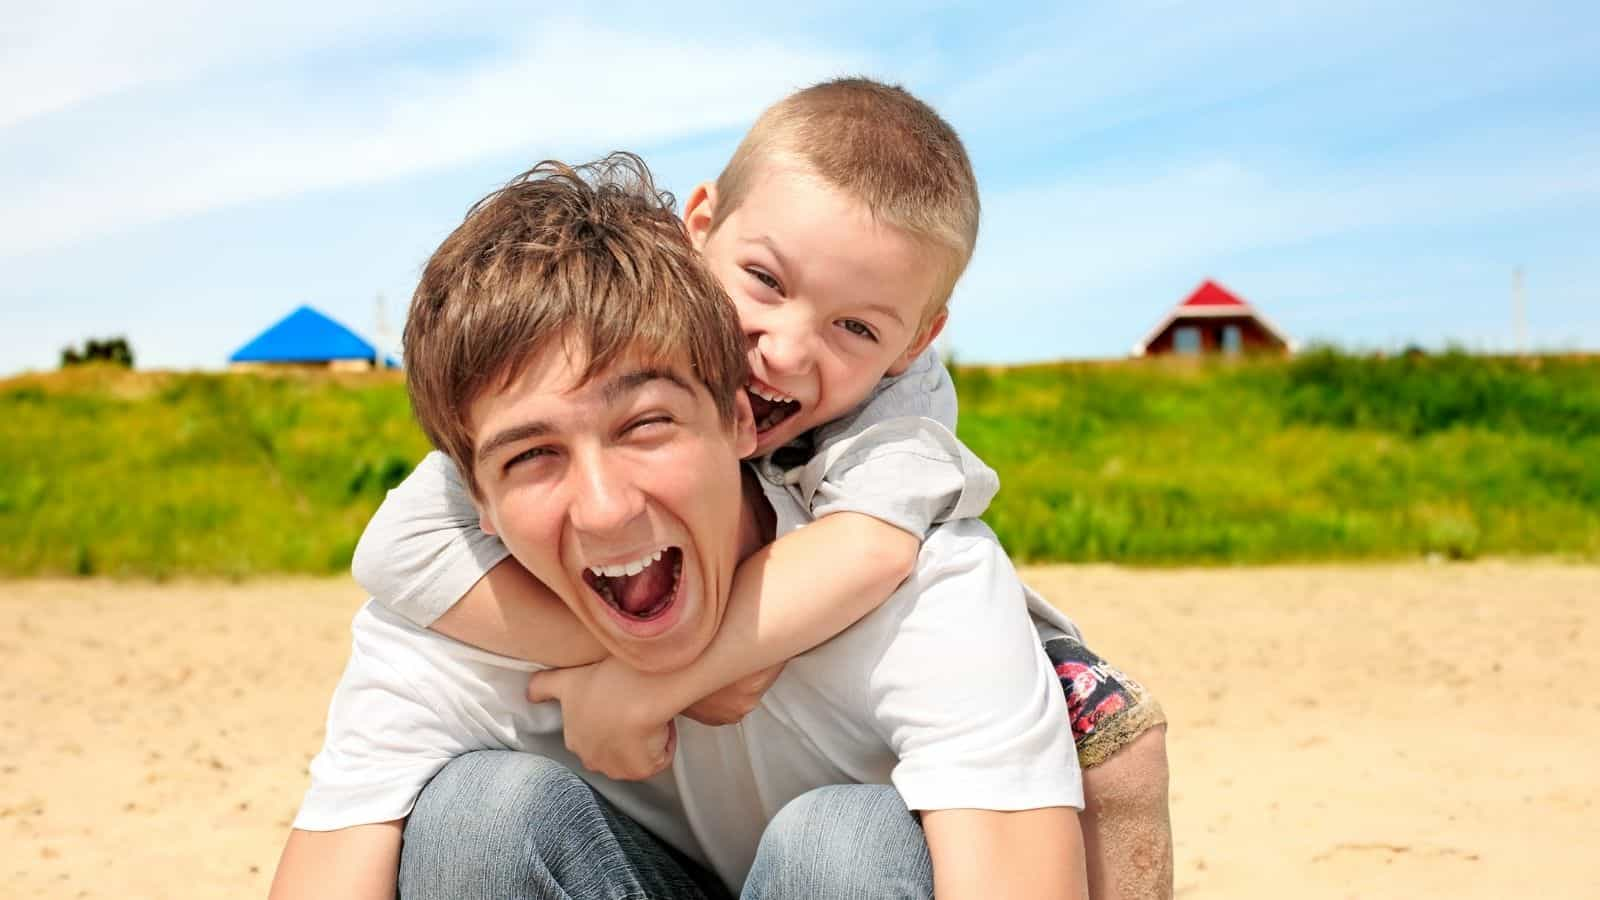 Help your children by teaching them to be resilient